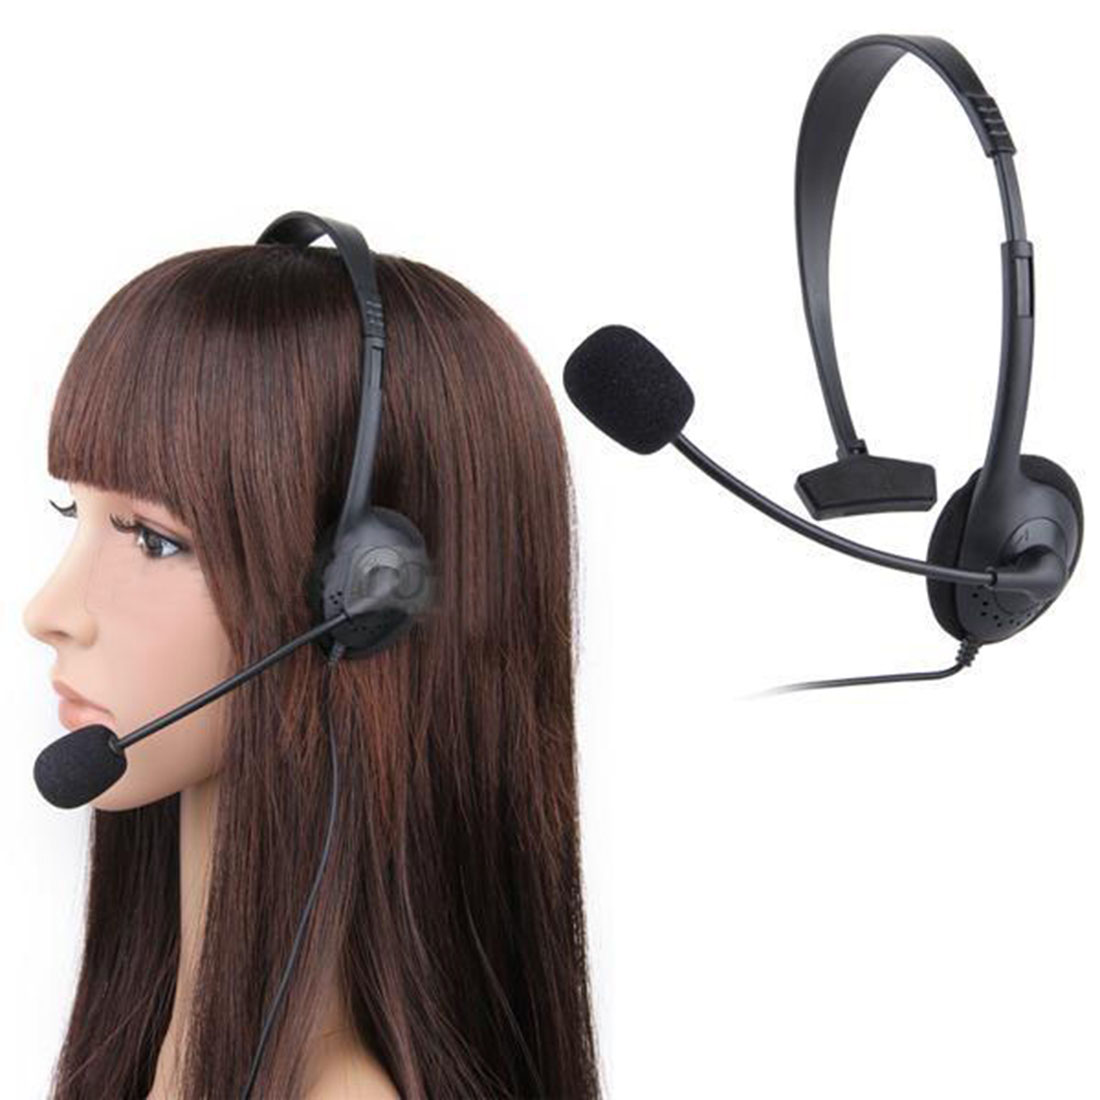 Marsnaska Hot Sale Black Video Game single ear Headset Headphone earphone with Microphone Mic for Xbox 360 Xbox360 зарядное устройство для xbox xbox360 x360 pc